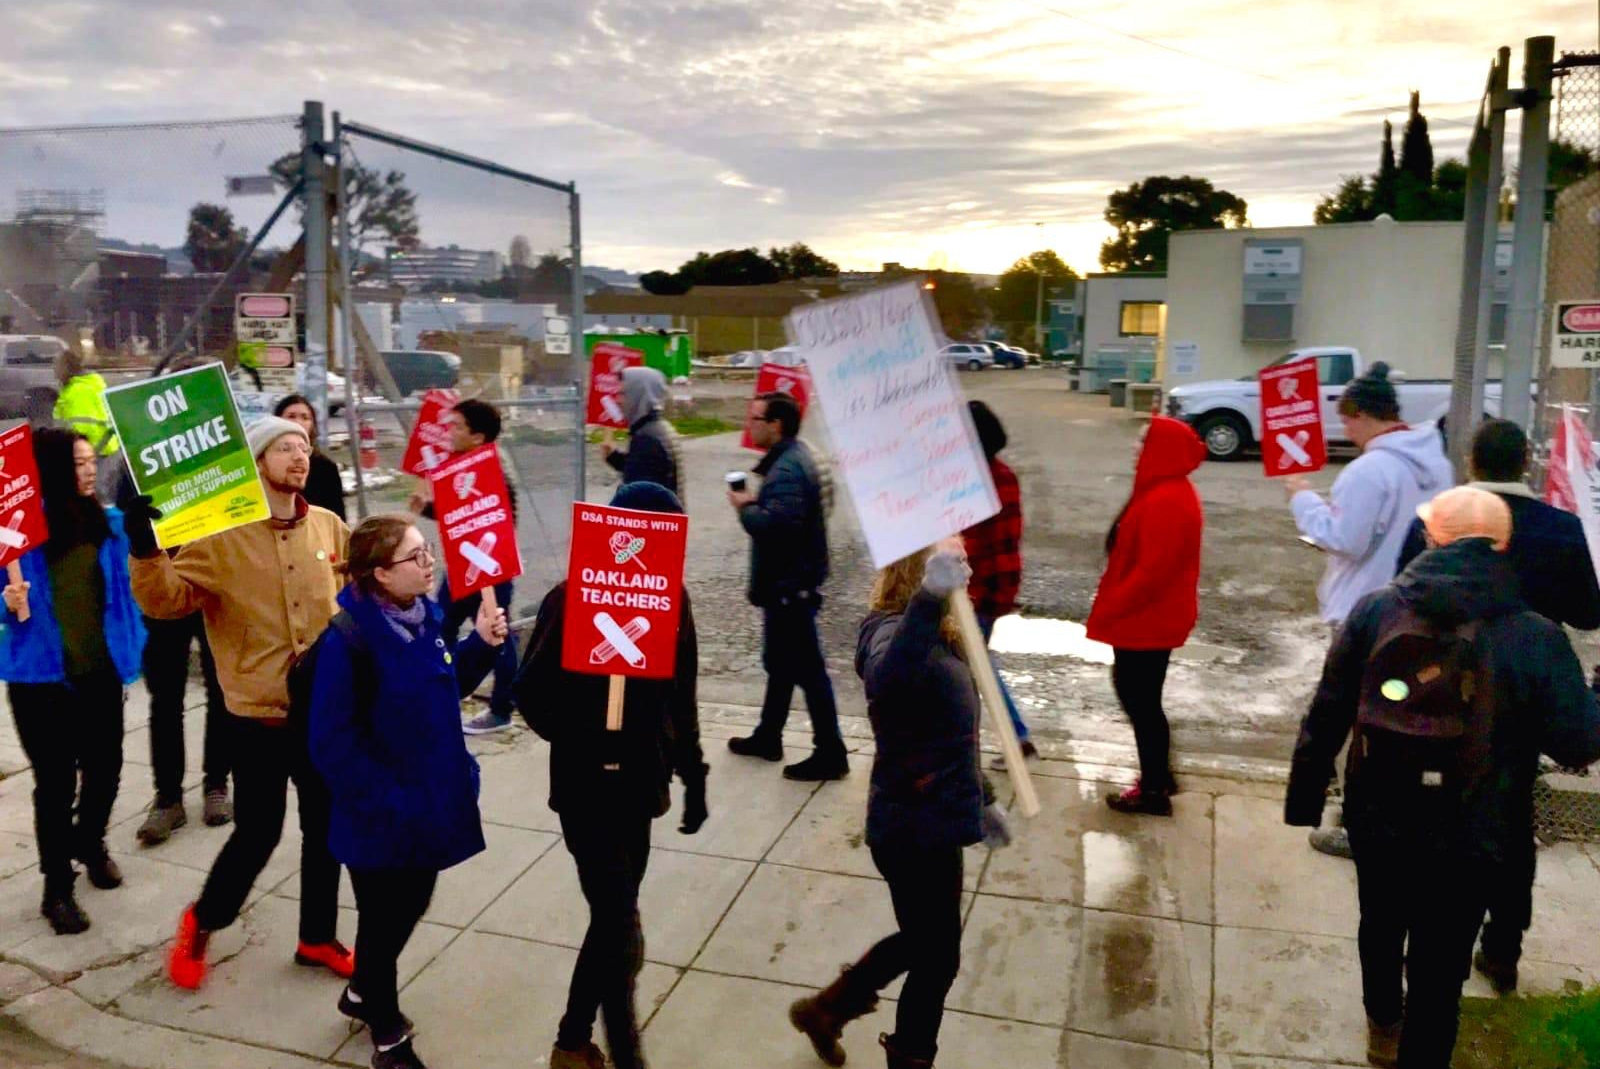 DSA members join a picket line in Oakland